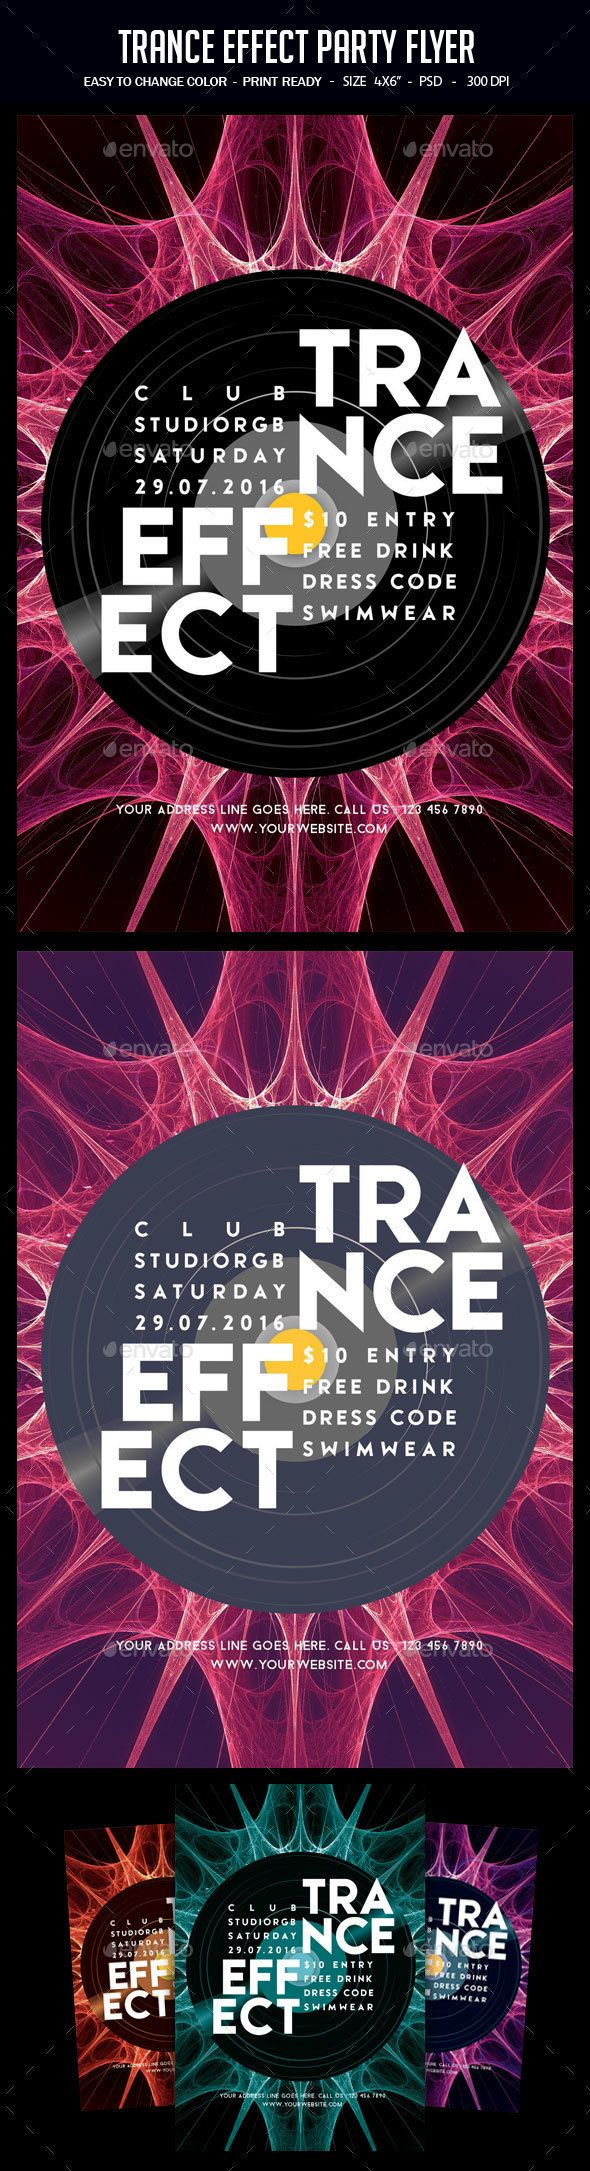 trance effect party flyer party flyer font logo and flyer template